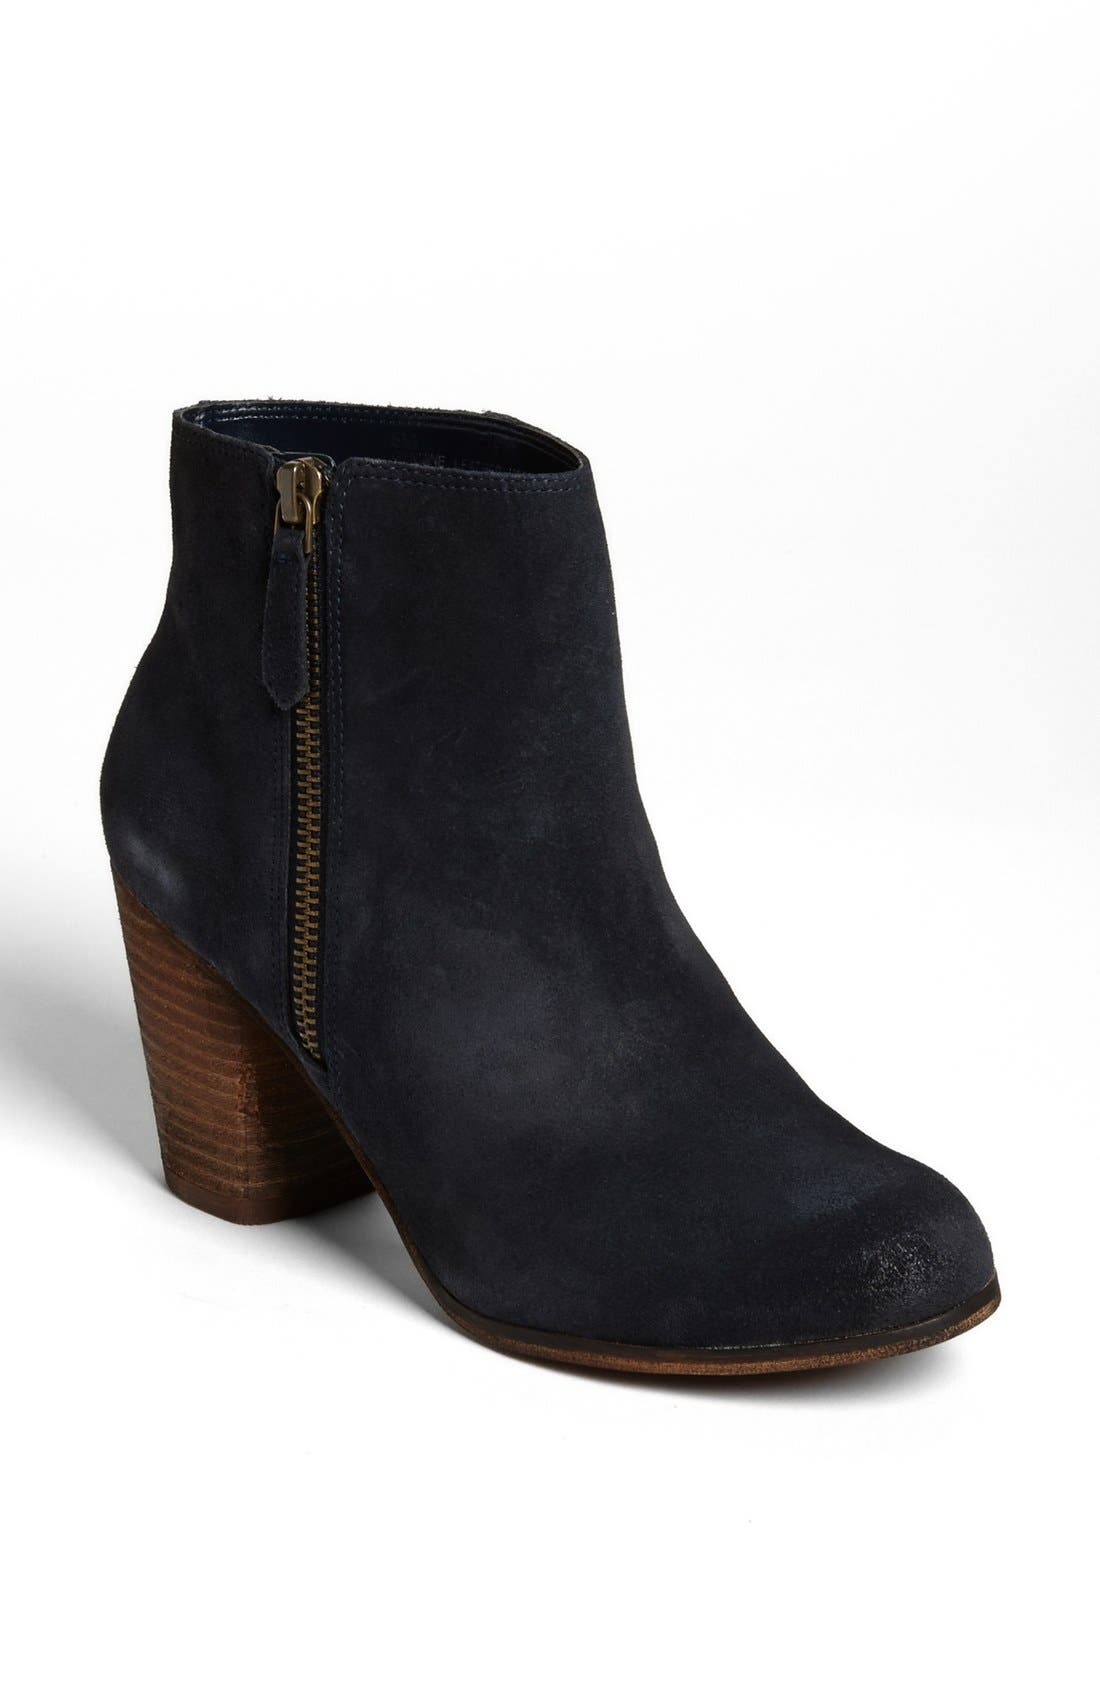 Alternate Image 1 Selected - BP. 'Trolley' Suede Ankle Boot (Women)